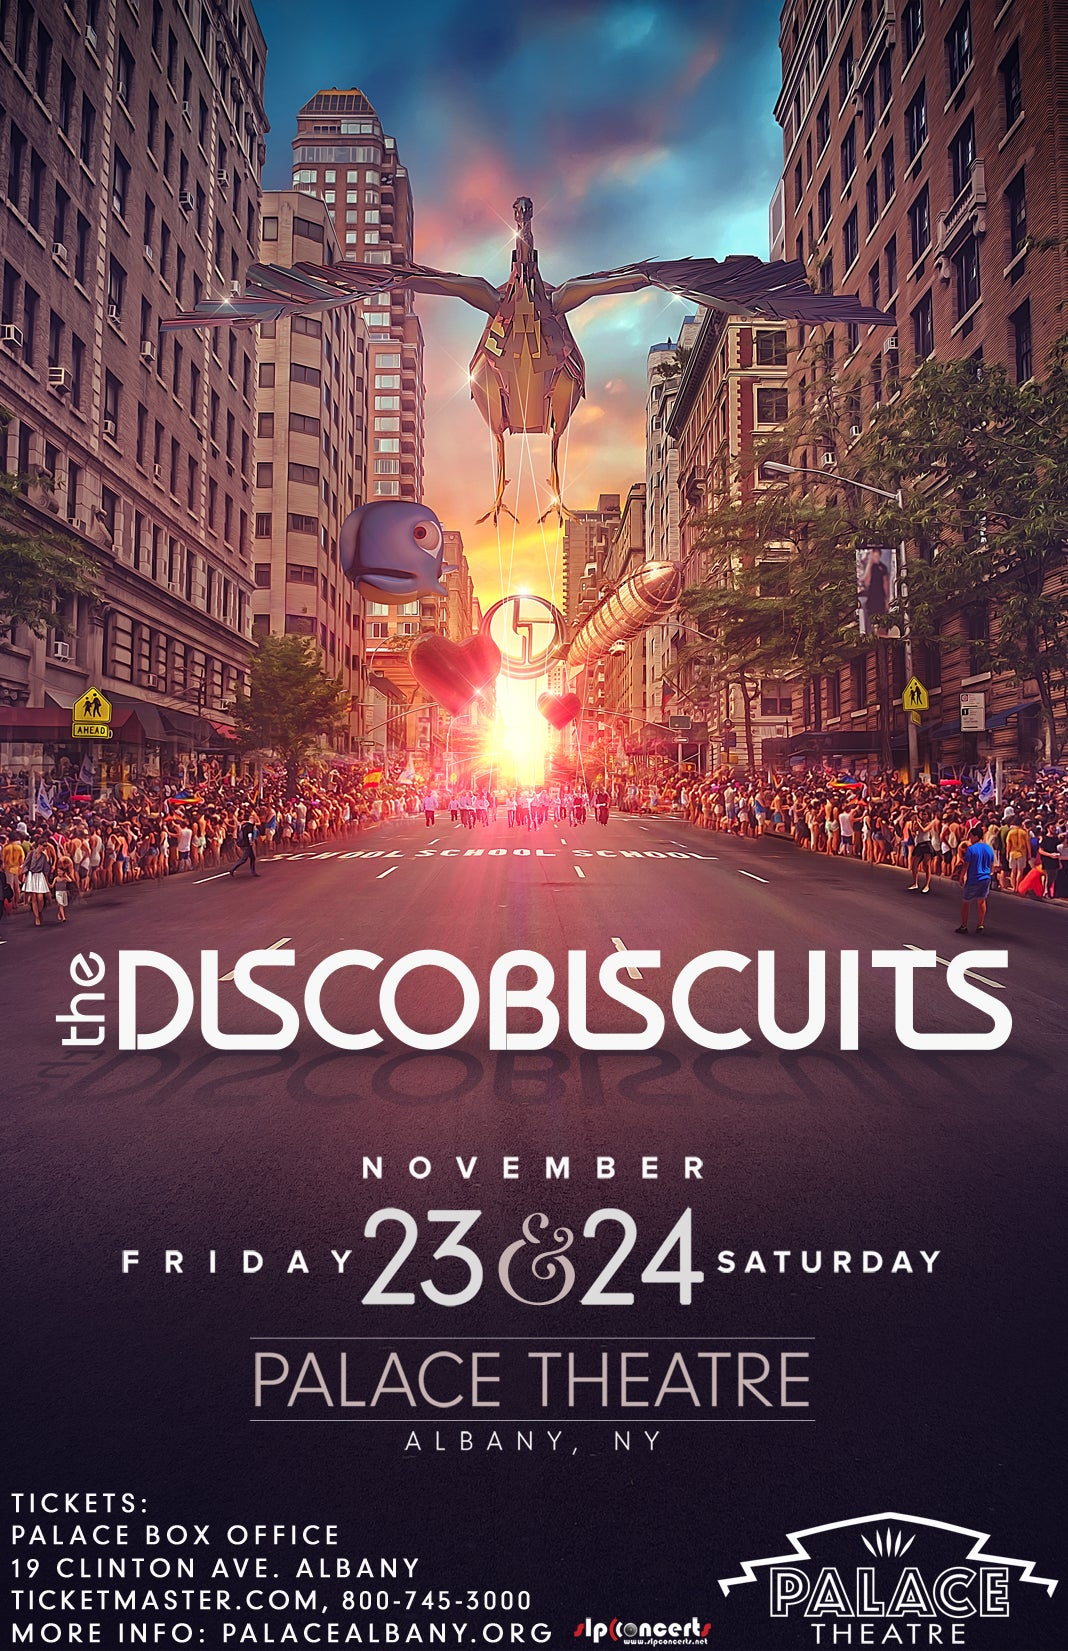 DiscoBiscuits_Albany - LocalFlyer - GenUse.jpg